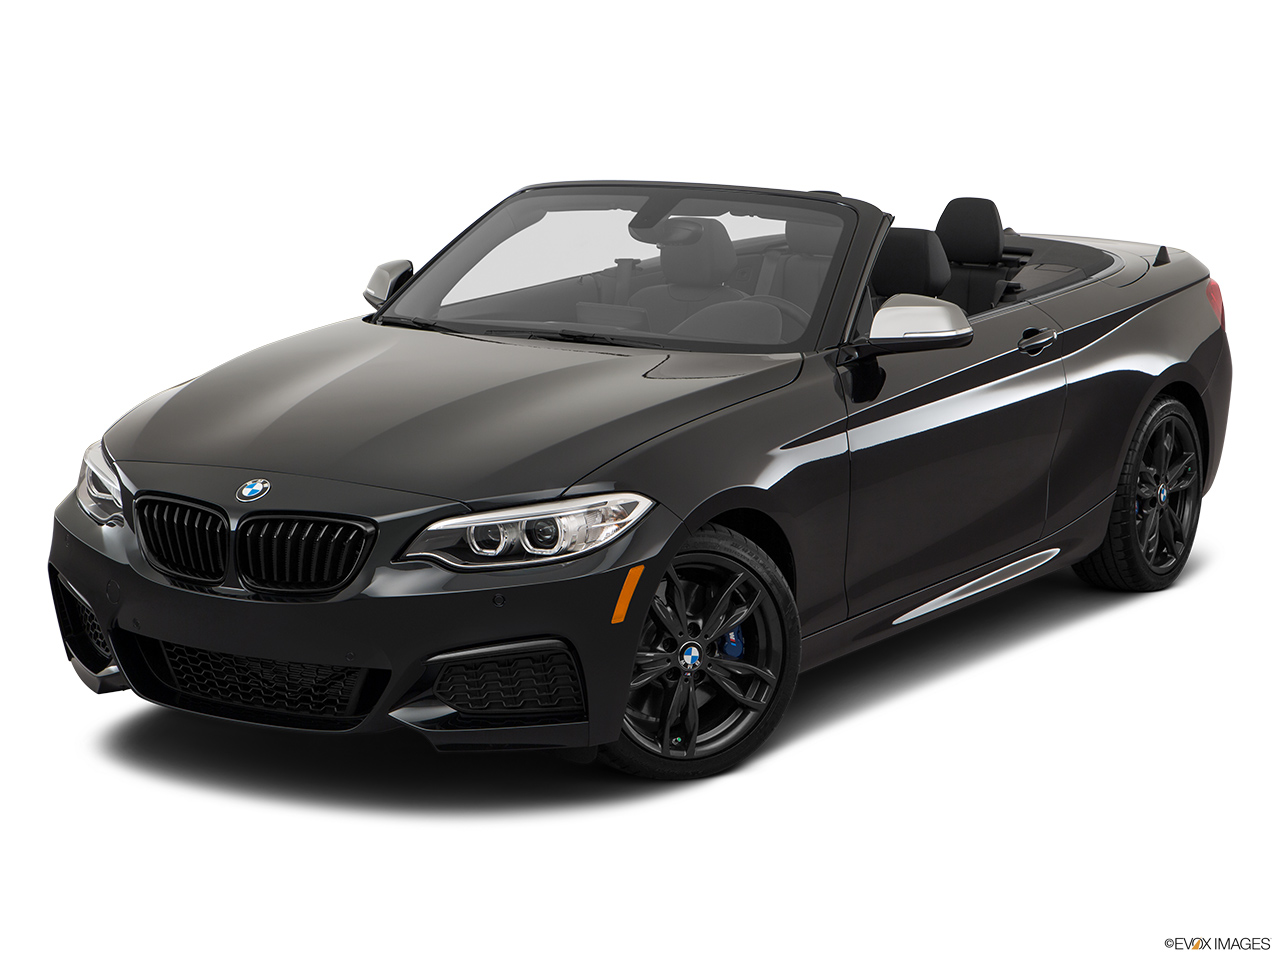 2017 bmw 2 series convertible prices in kuwait gulf specs. Black Bedroom Furniture Sets. Home Design Ideas